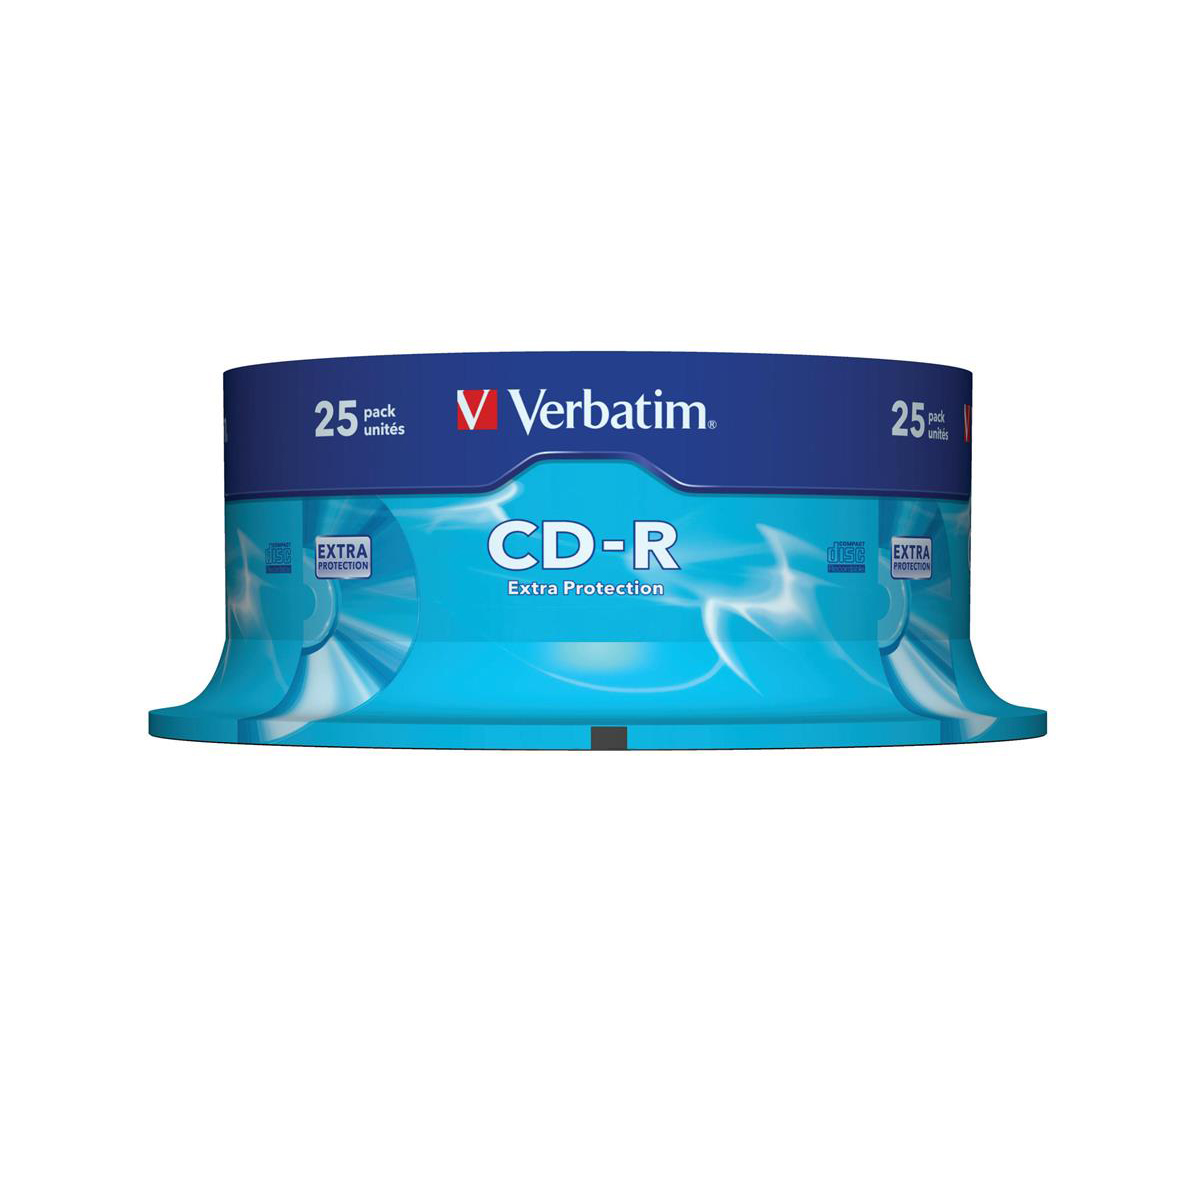 Verbatim CD-R Extra Protection Ref 43432-1 Pack 25